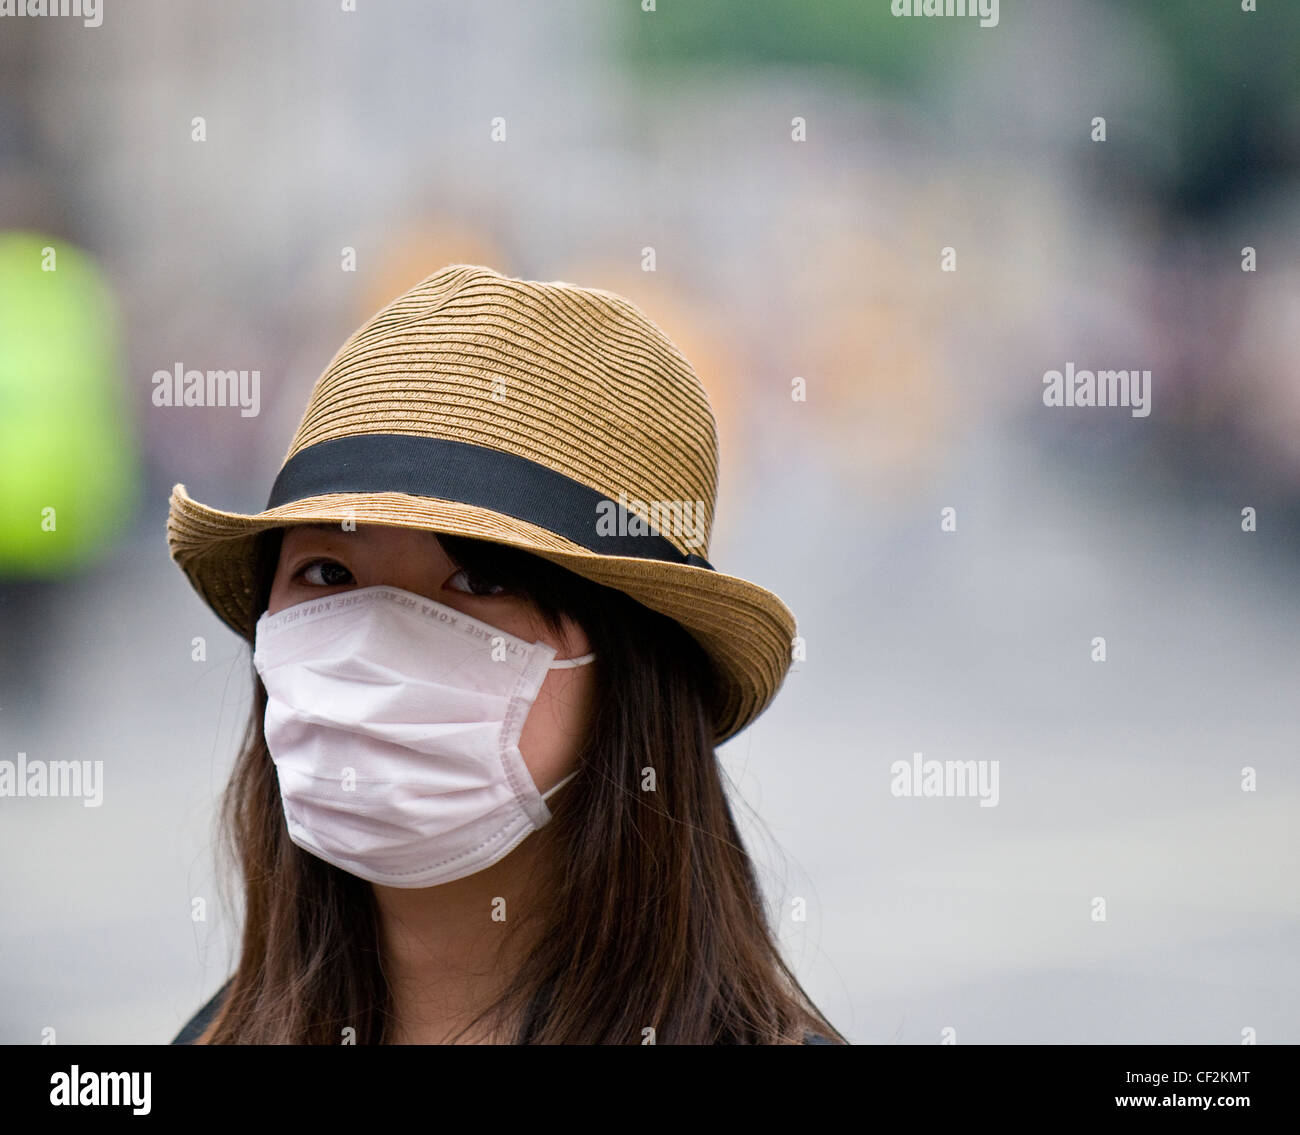 A young woman wearing a face mask to protect herself against catching swine flu. Stock Photo